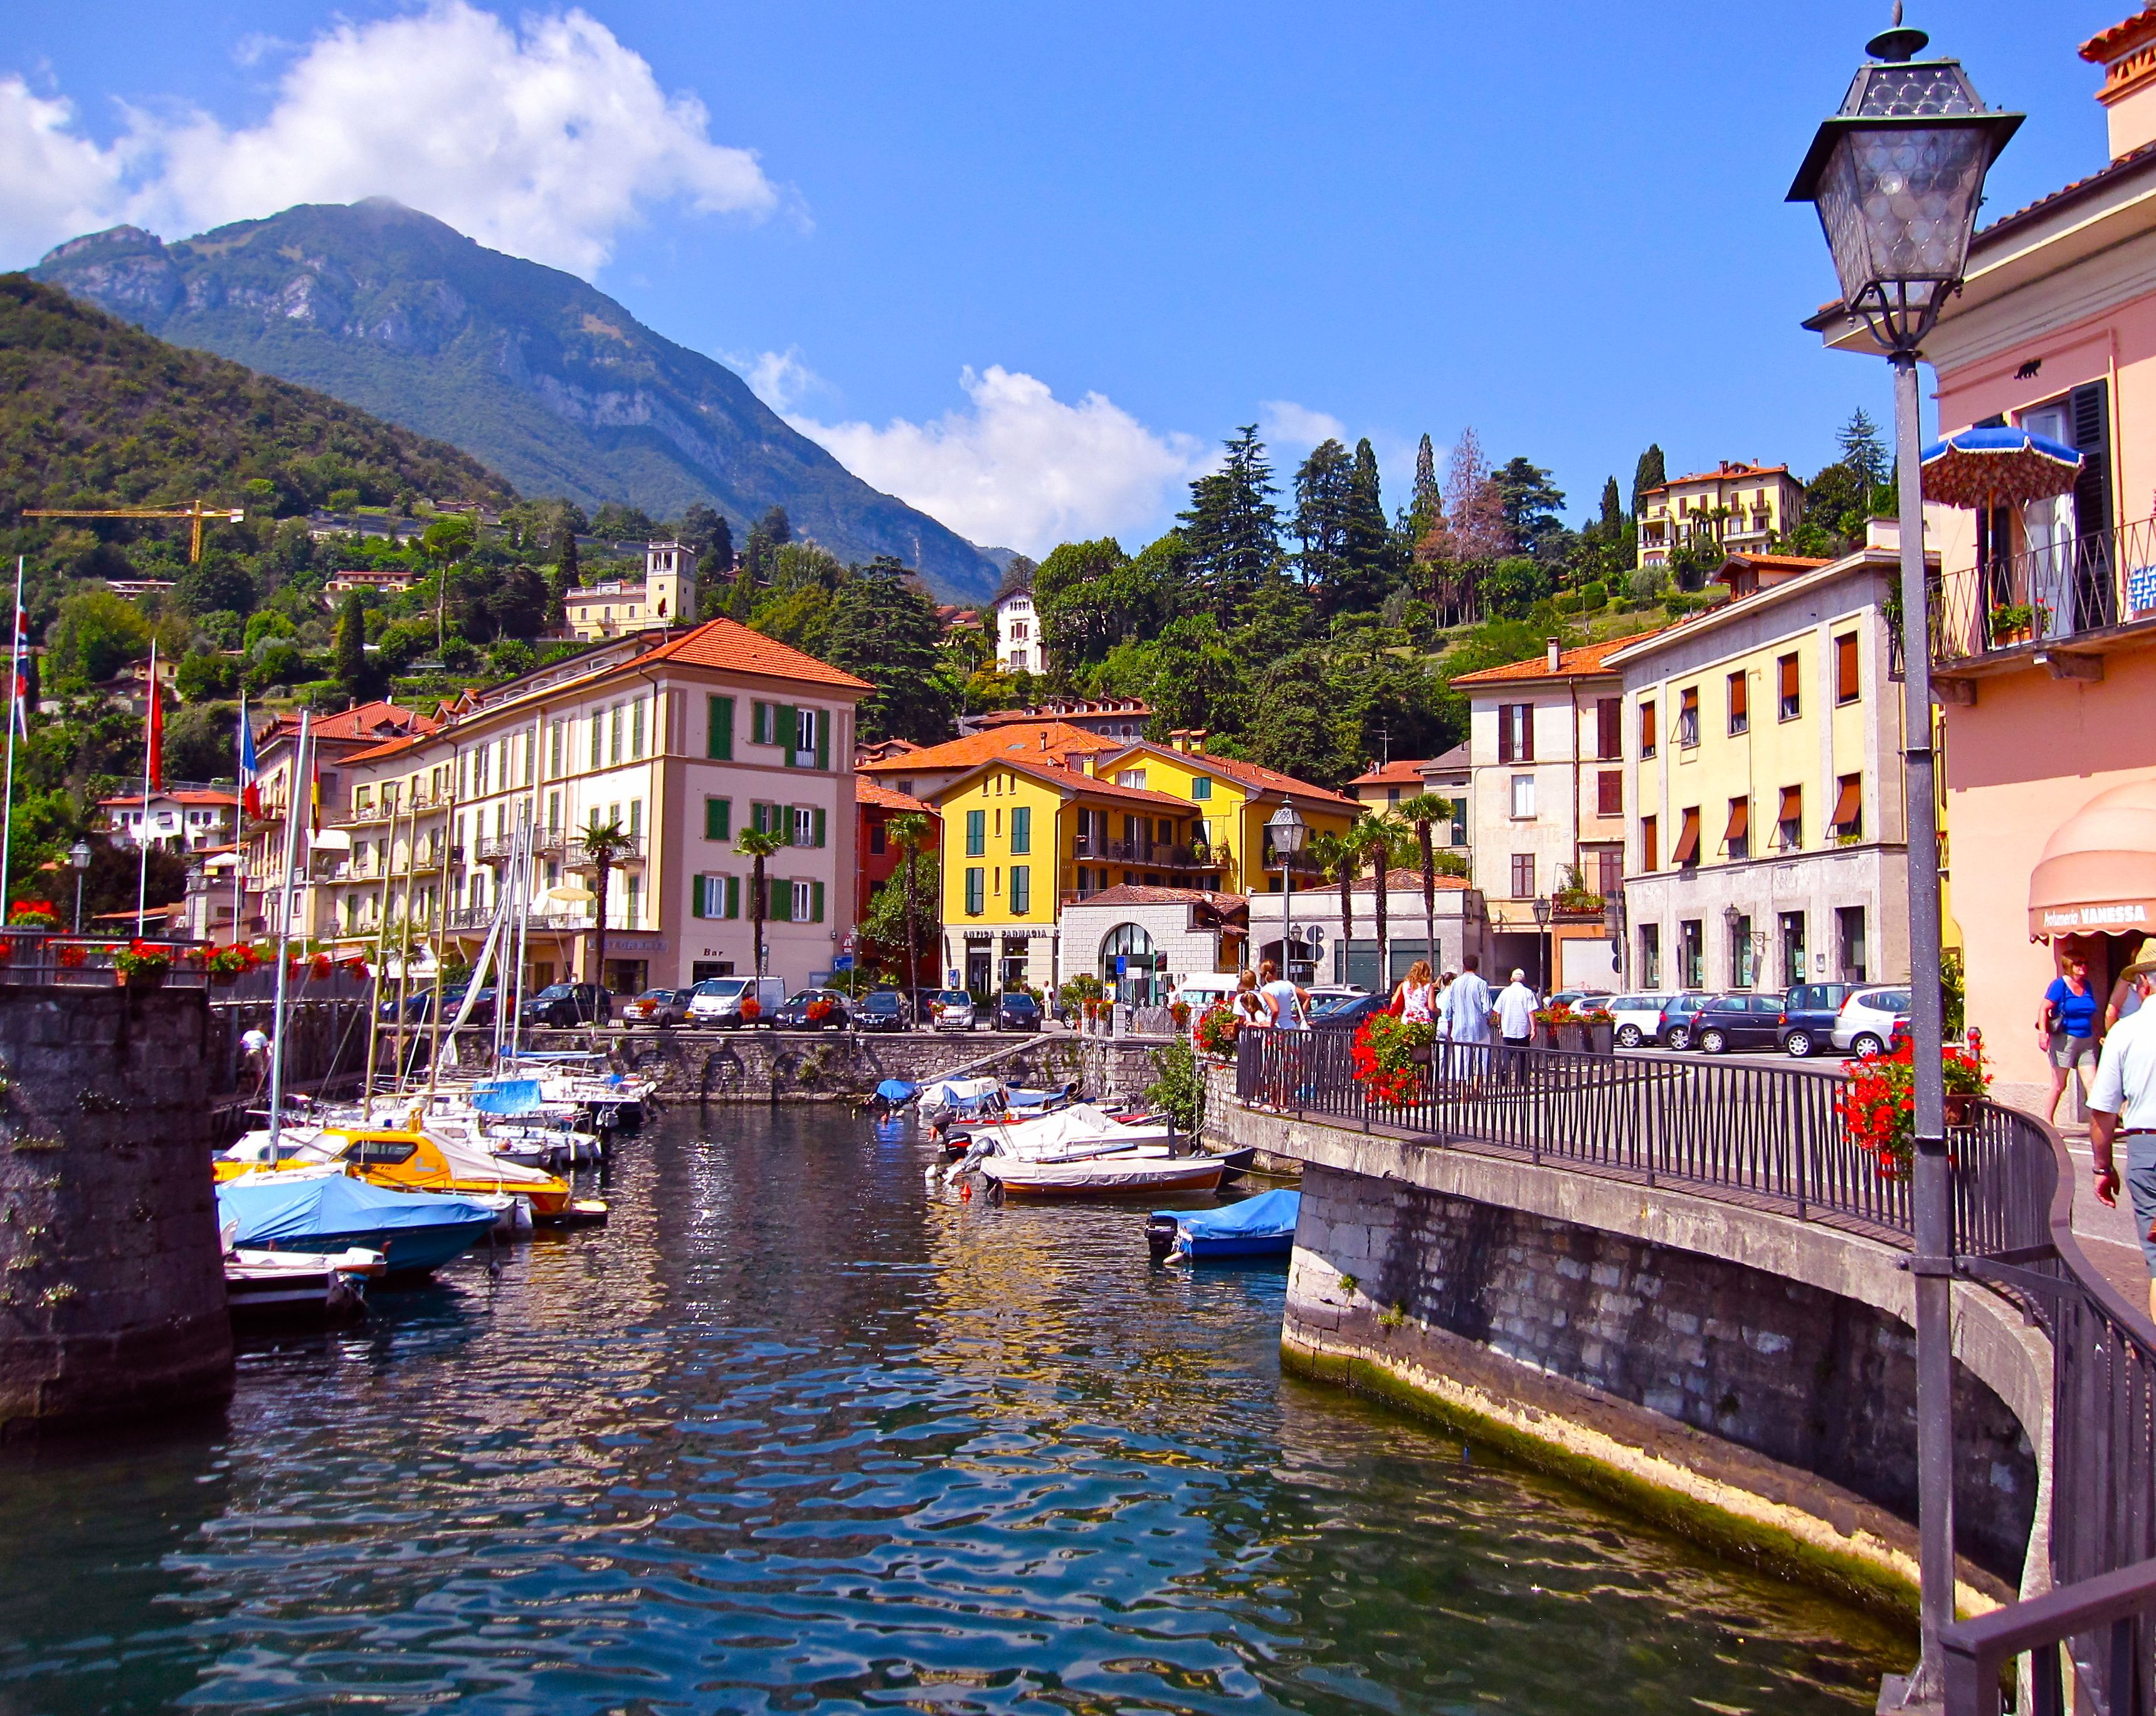 Town of Menaggio - Lake Como - stayed in this lovely place. Some really nice little restaurants.